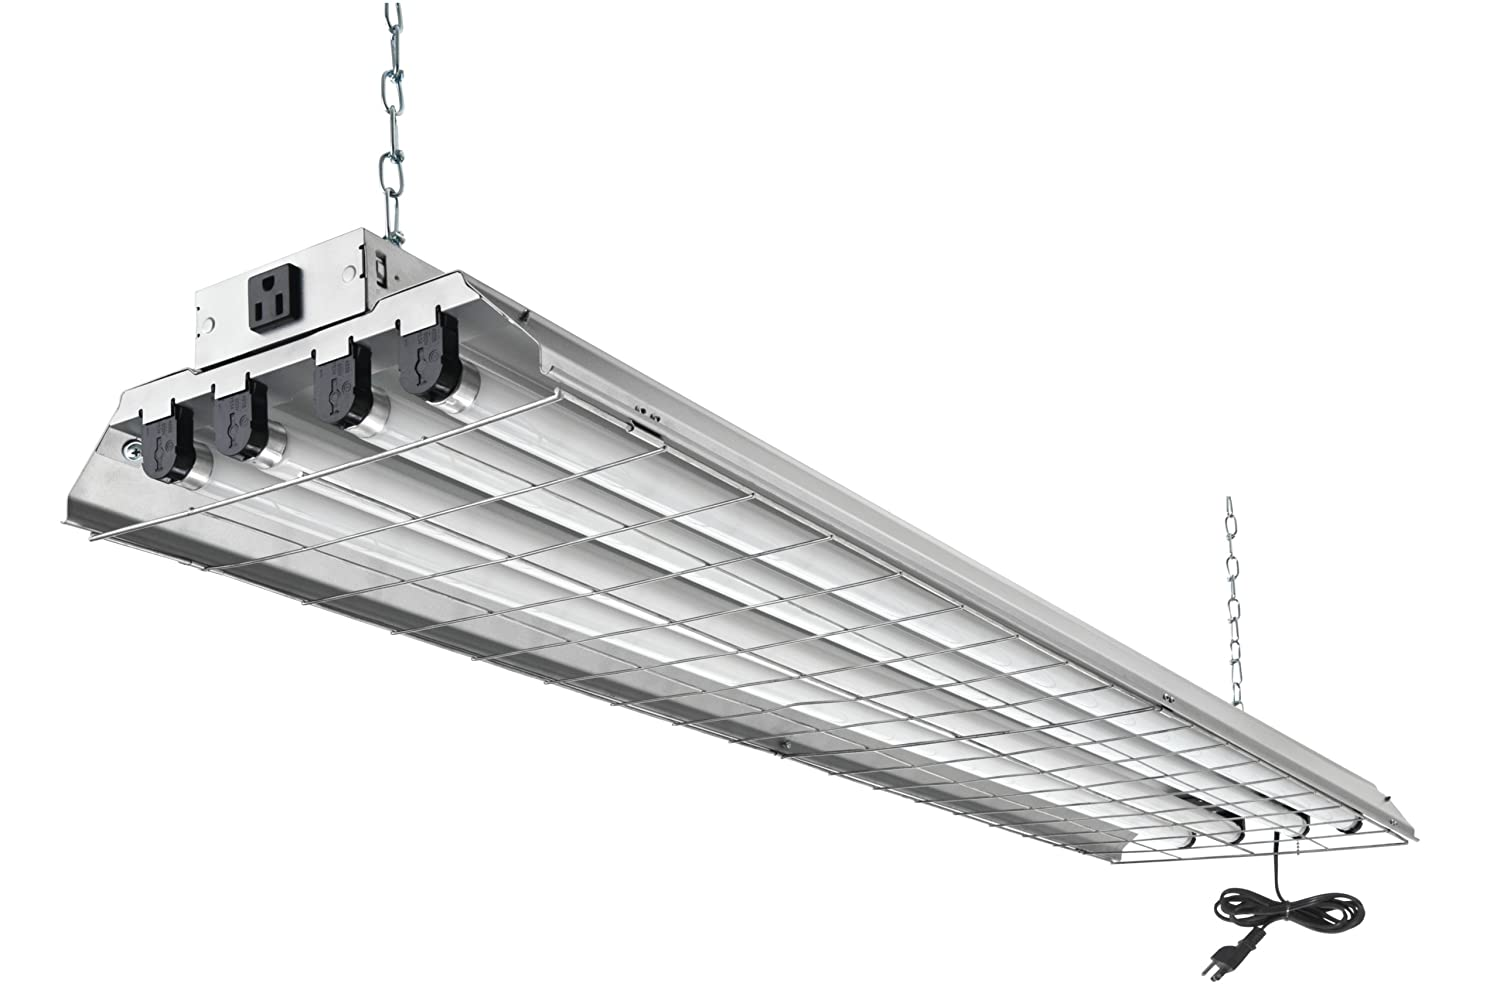 Lithonia Lighting 1245 SHOPLIGHTH2:H183 2-Light Fluorescent Shop ...